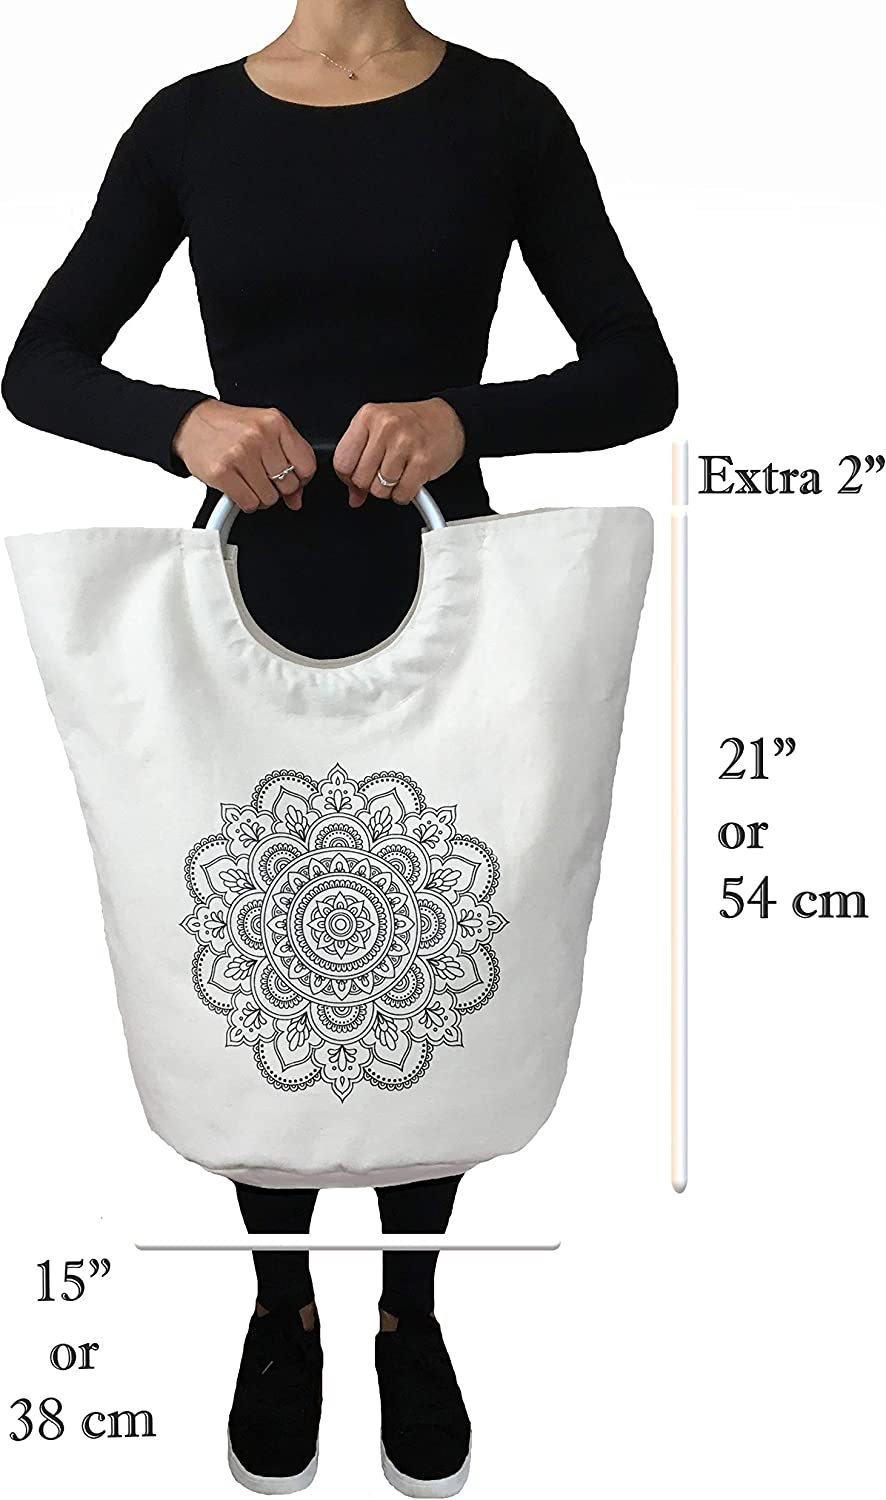 Mandala Popself Laundry Hamper Collapsible Laundry Basket Foldable Kids Hamper Clothes Laundry Tote Folding Canvas Laundry Bag Teen Girl Gifts for Women College Dorm Room Essentials for Girls